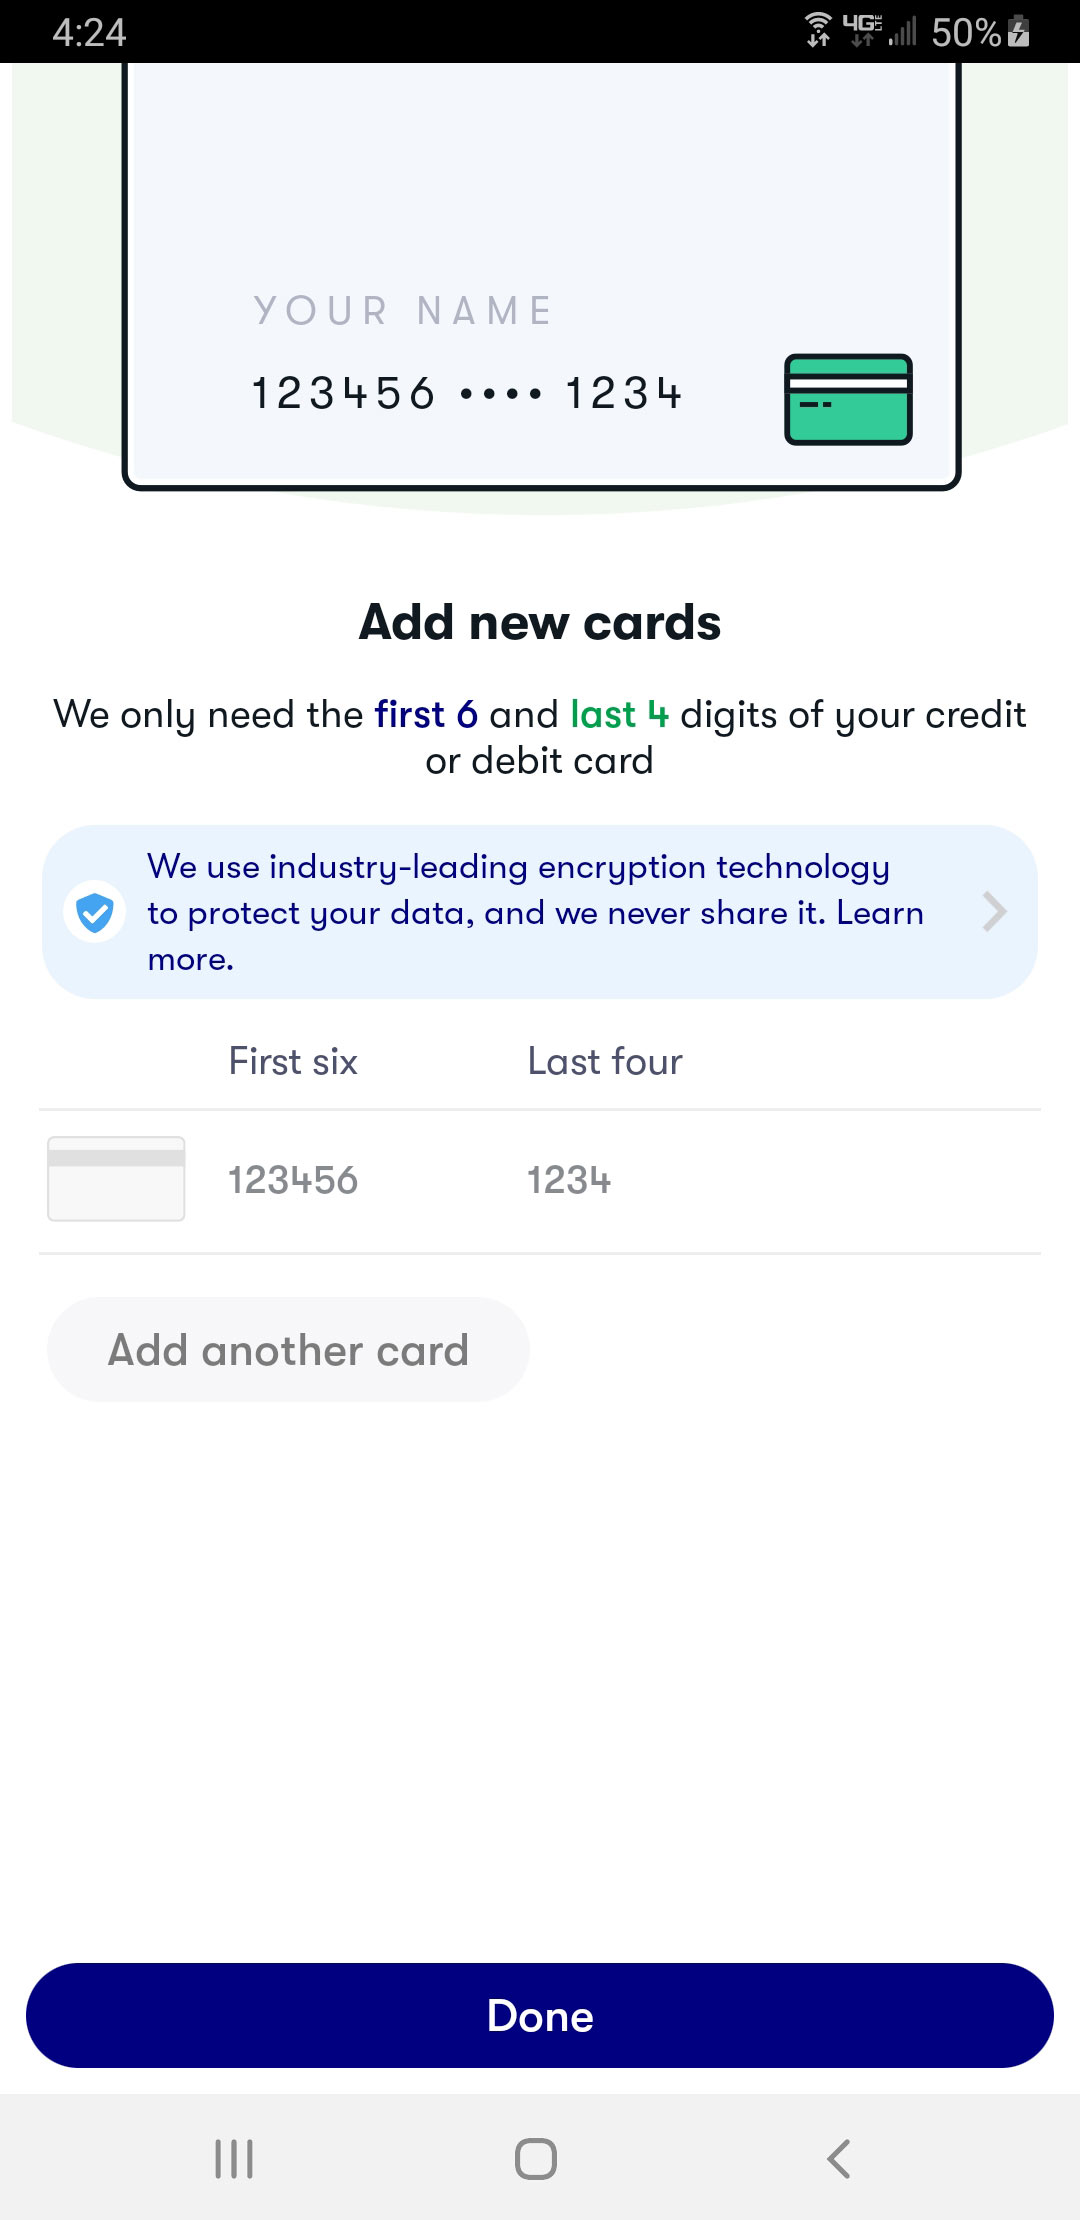 Screenshot of the add new card screen on the GetUpside app, requesting only the first 6 and last 4 digits of the credit or debit card.